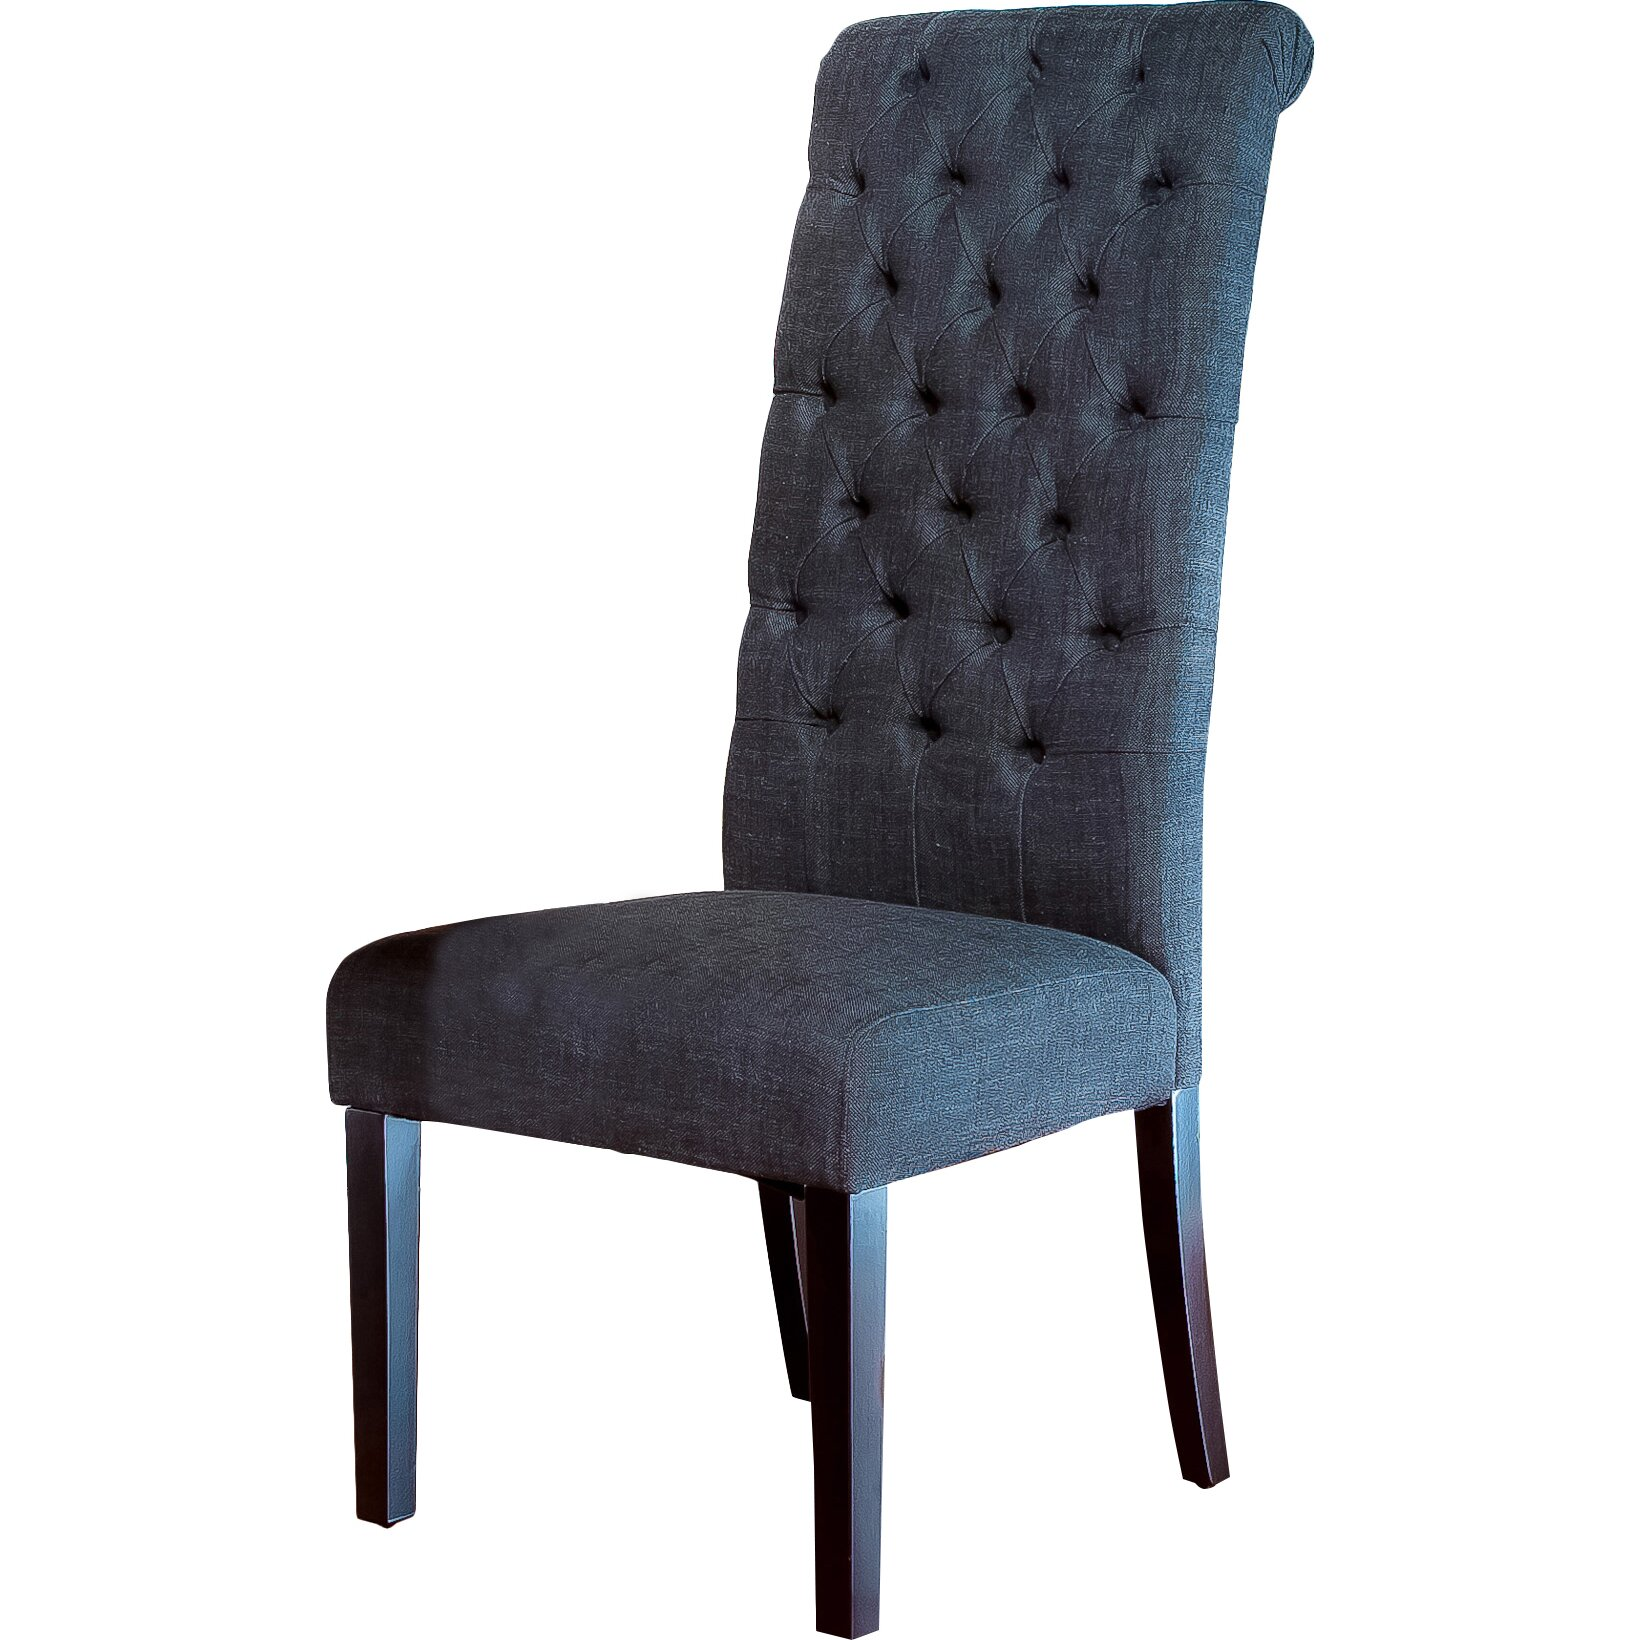 charlton home estbury tall tufted upholstered dining chair